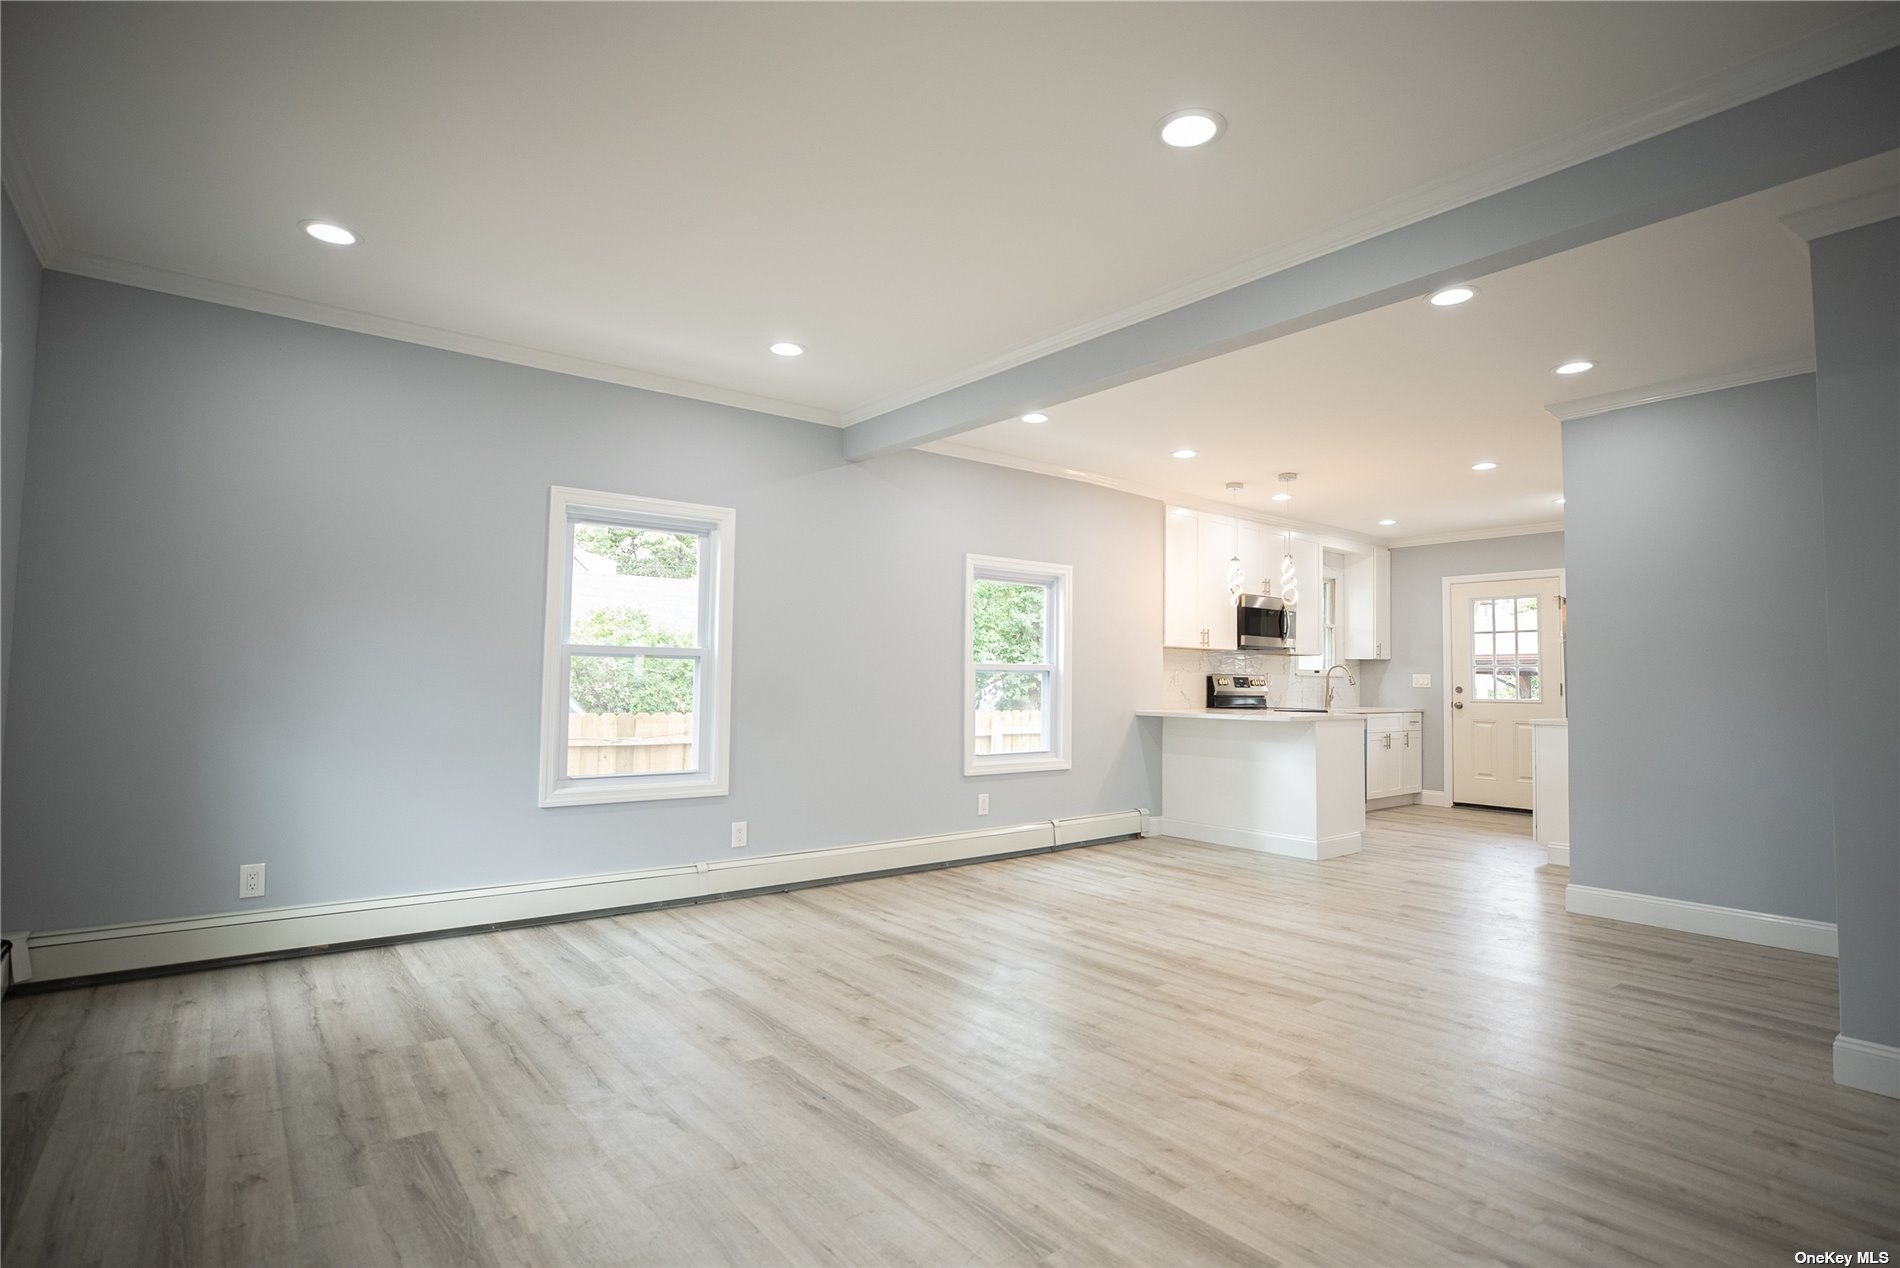 This Amazing Home has Been Completely Renovated. New Kitchen with Stainless Steel Appliances, Open Floor Plan, Large Living Room, 1st. Floor Master Bedroom, Full Bath + Three Bedrooms & Full Bath on 2nd Floor, New Windows, Full Basement, One Car Detached Garage and Much More